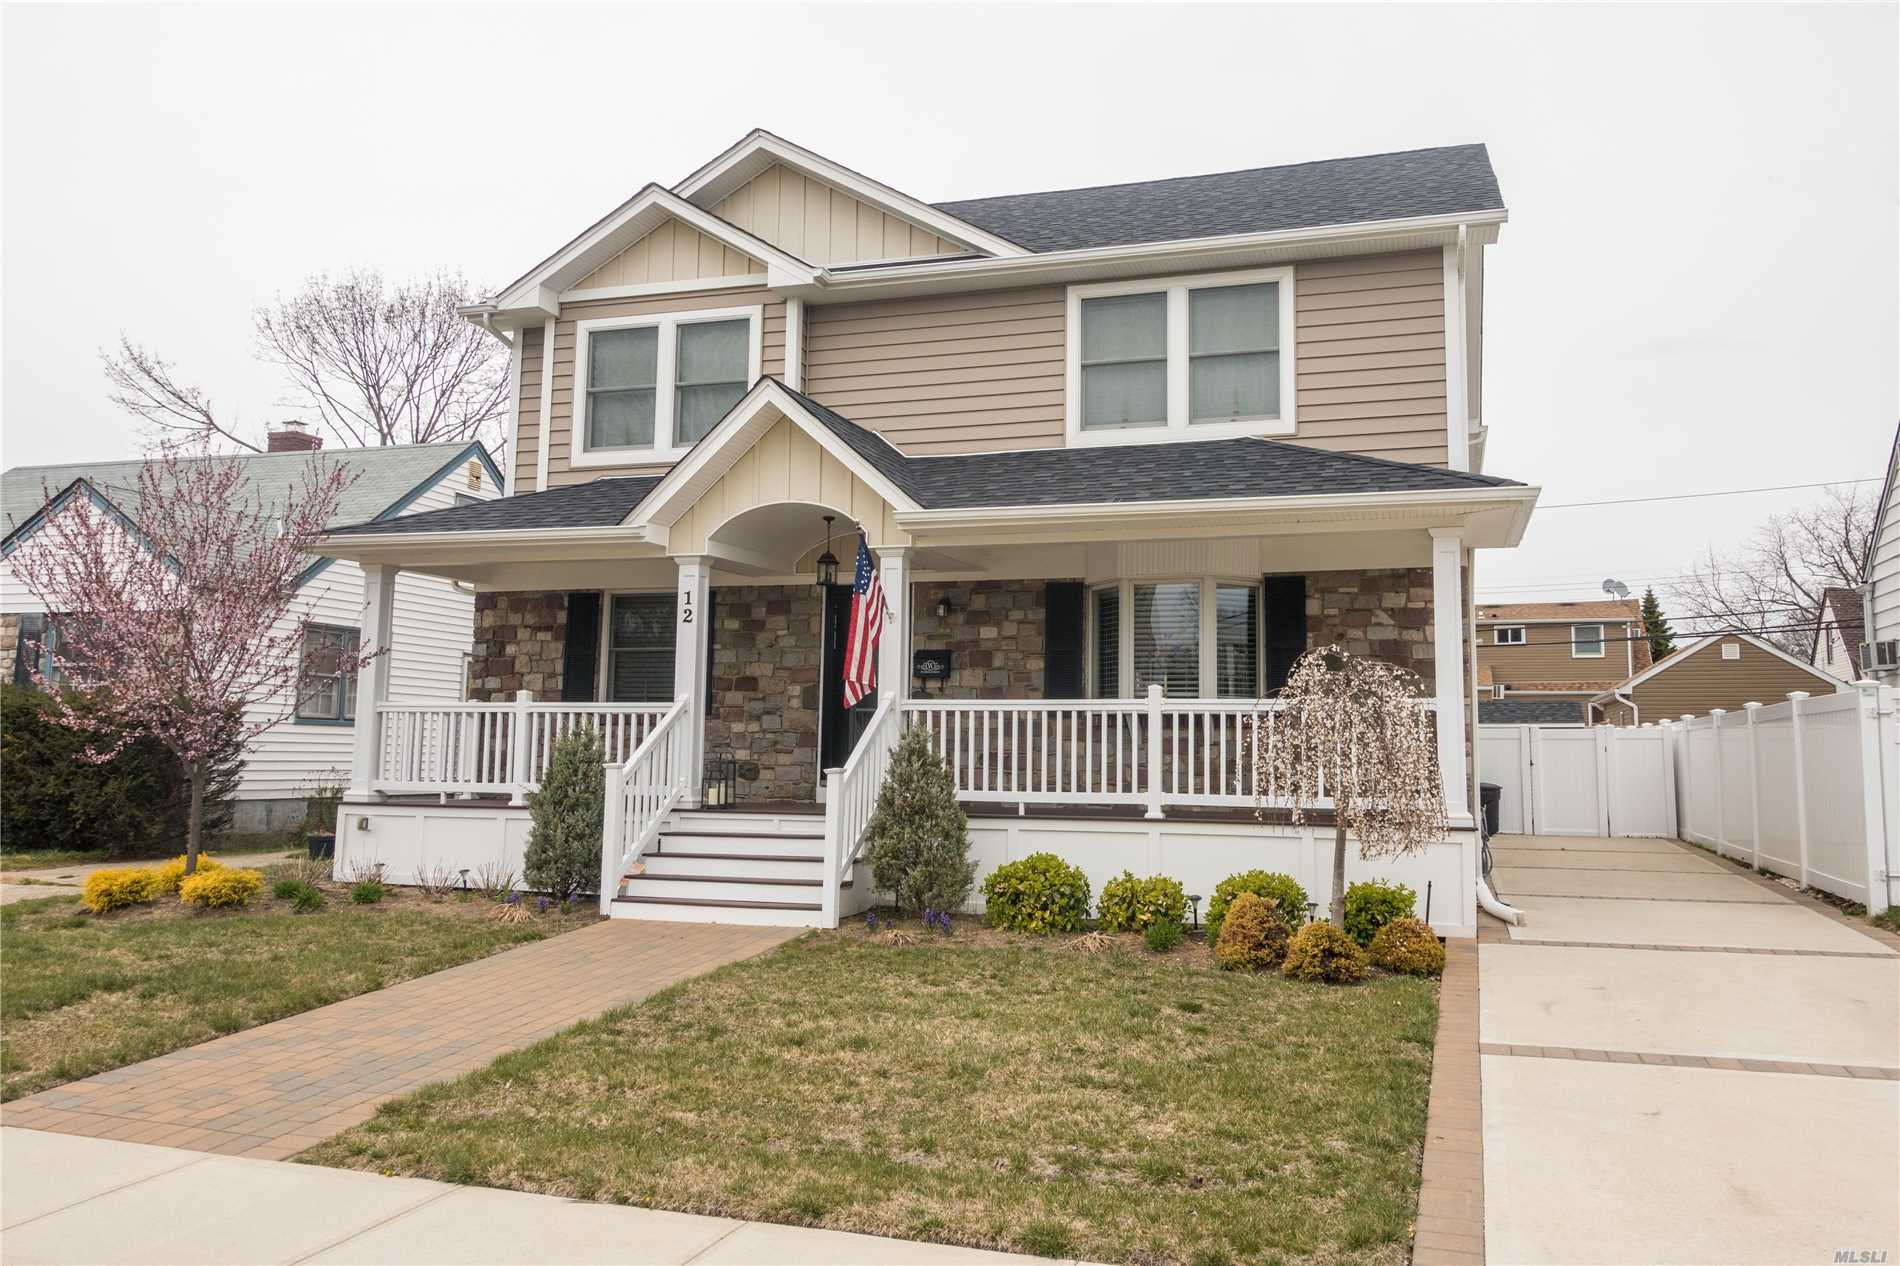 Words Like Beautiful or Magnificent come to mind when describing this house that was Built by a well known builder. This True 4 Bedroom 2.5 Bath Mint Colonial has everything and more. Large Extended Kitchen with Marble counters, Stainless Steel Appliances, Pantry, Island, Gas Cooking, with Open Floor Plan Perfect for entertaining.The Master Bedroom Features 2 WIC and Master Bath. 3 Large Bedrooms, Crown Molding, CAC, Hardwood Floors Central Heat, Patio, Front Porch, and more!